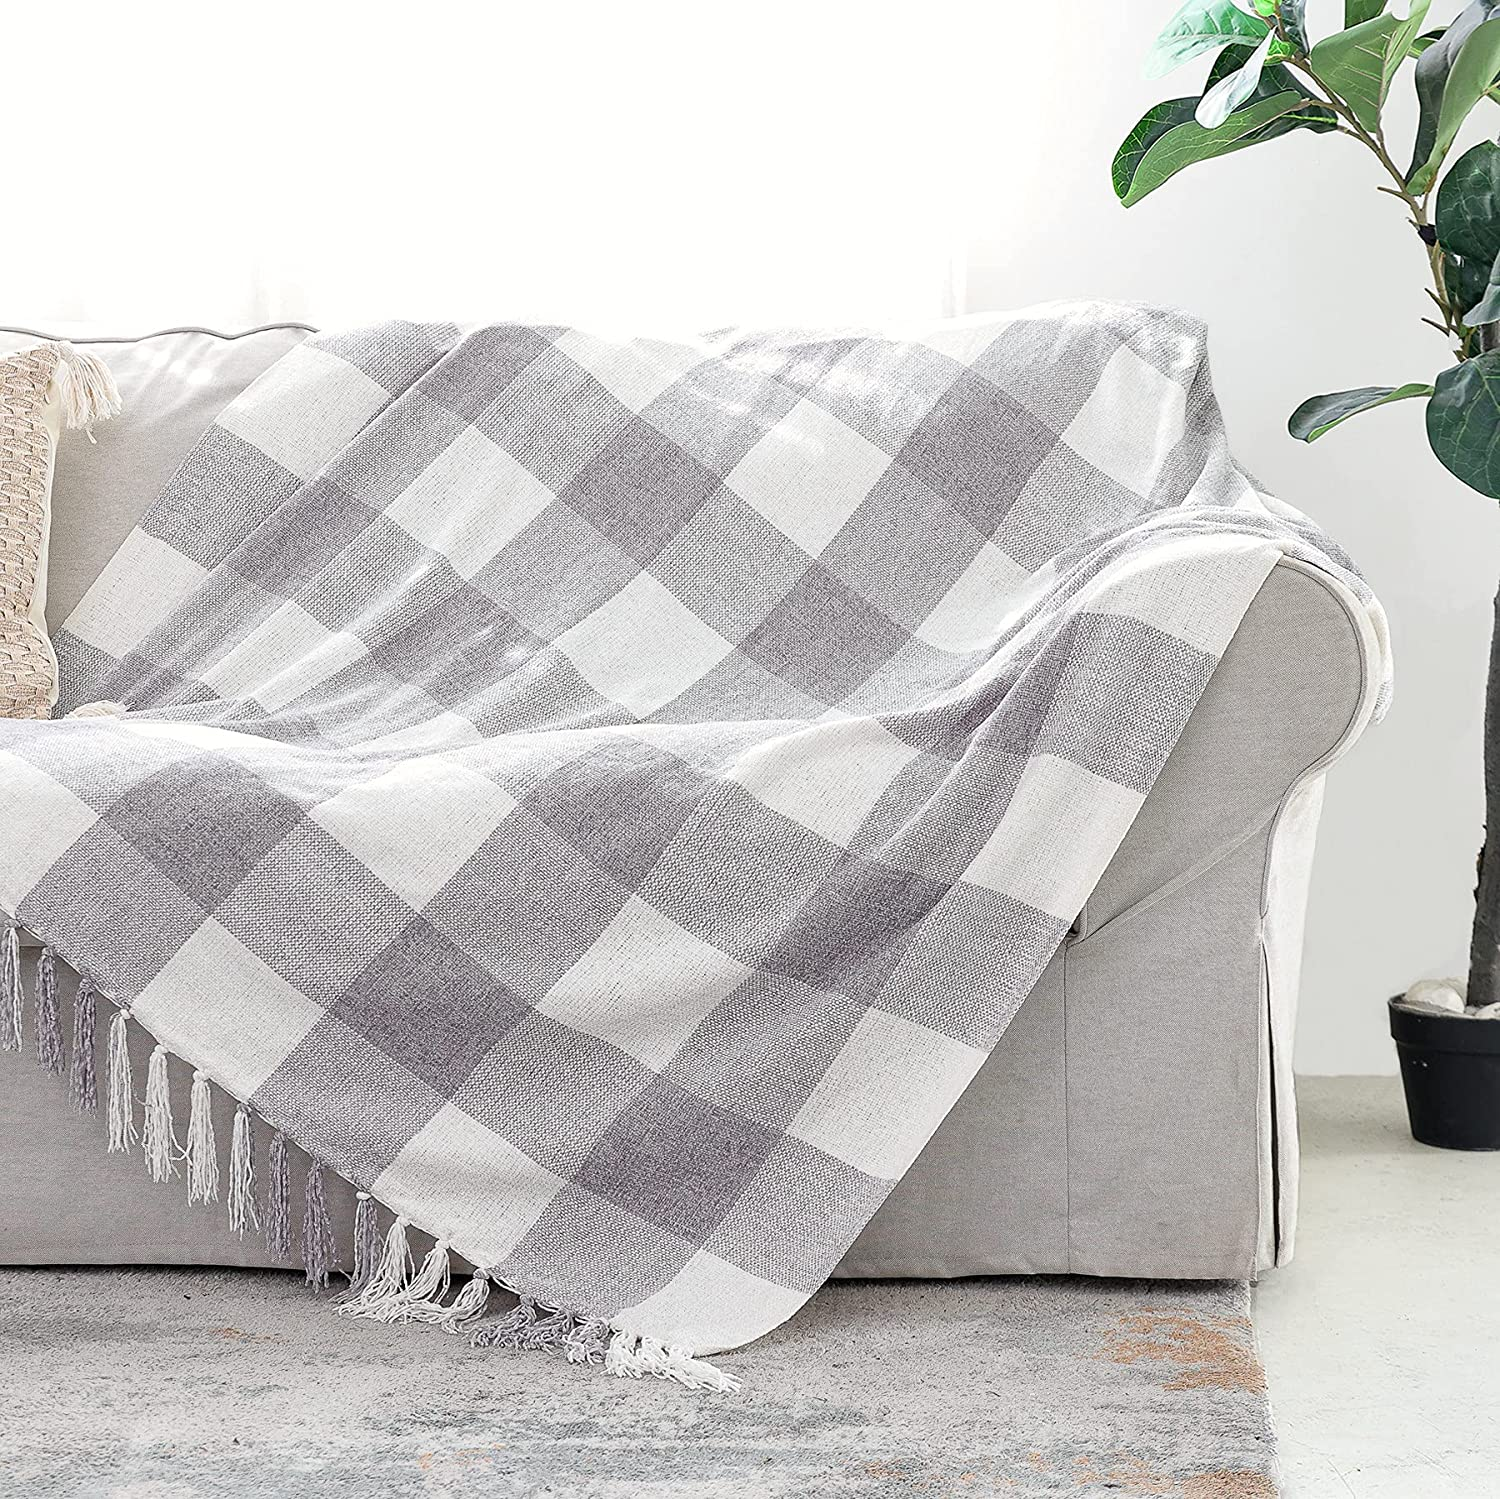 Grey White Buffalo Plaid Decor Blanket, Lightweight Soft Chenille Check Knitted Rustic Farmhouse Throw with Tassels for Couch Sofa Chair Bed Office Home, Gray and Ivory, 50